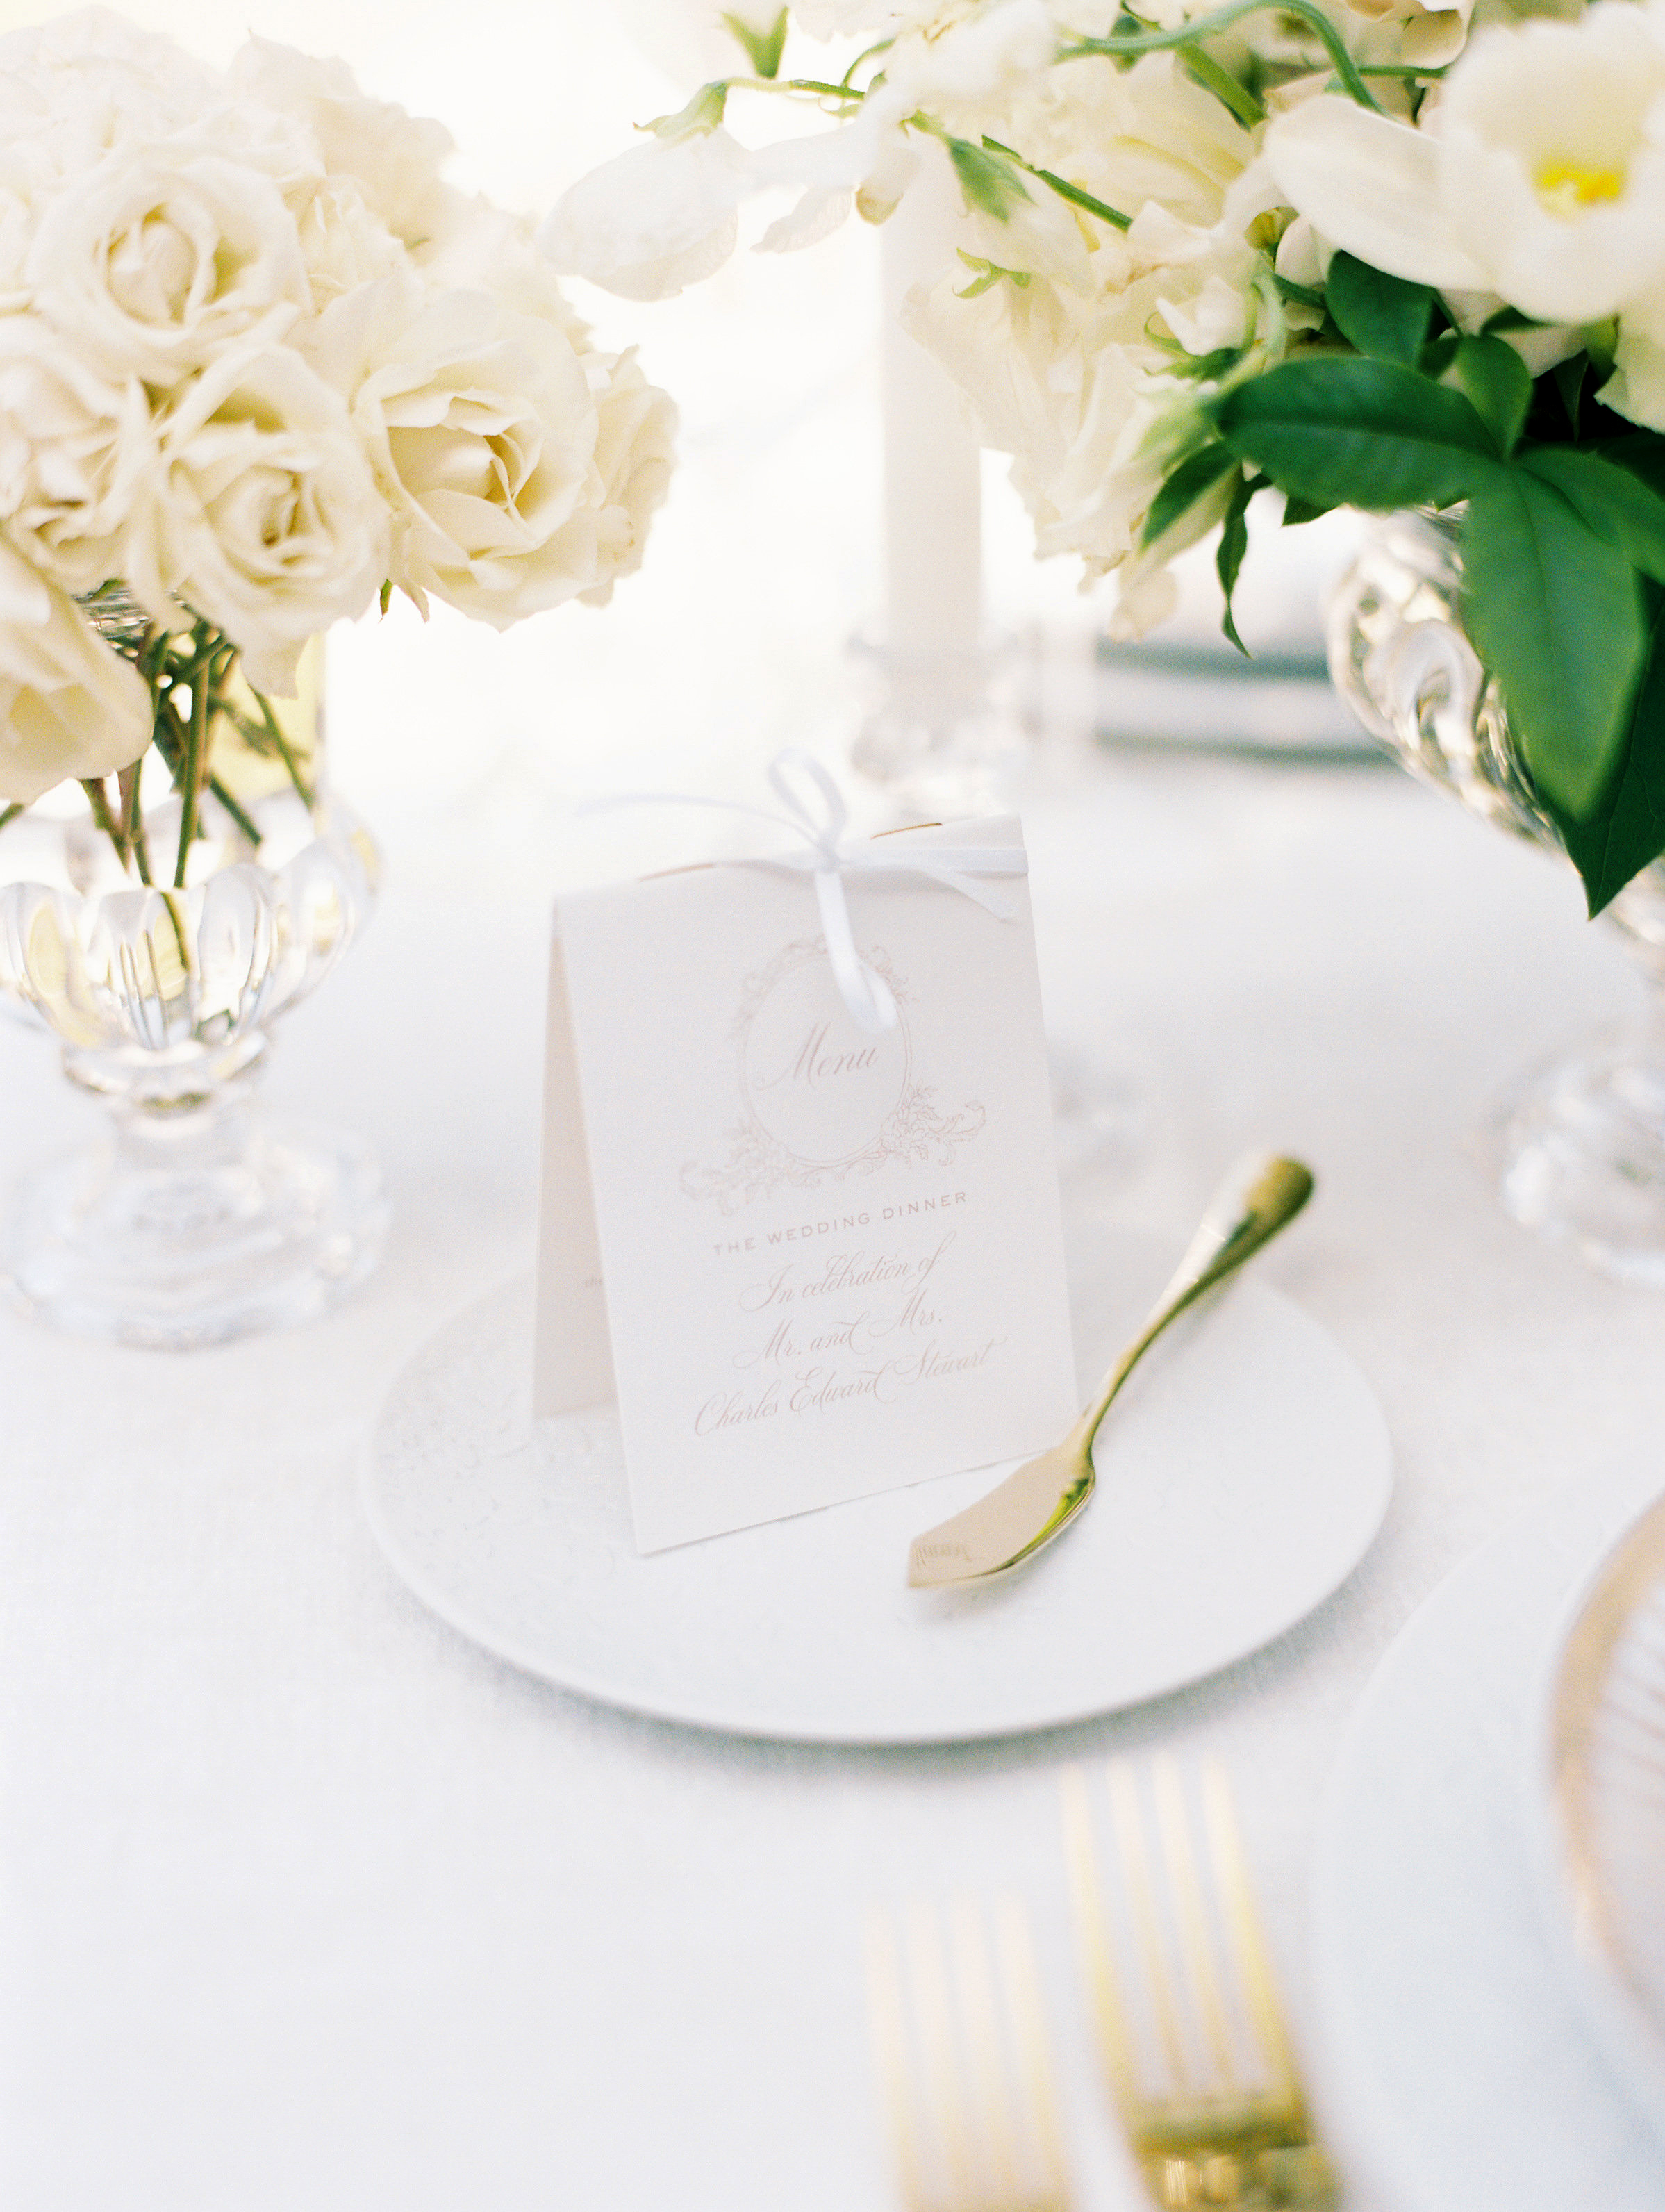 How Long Should Each Course of Your Wedding Meal Be?